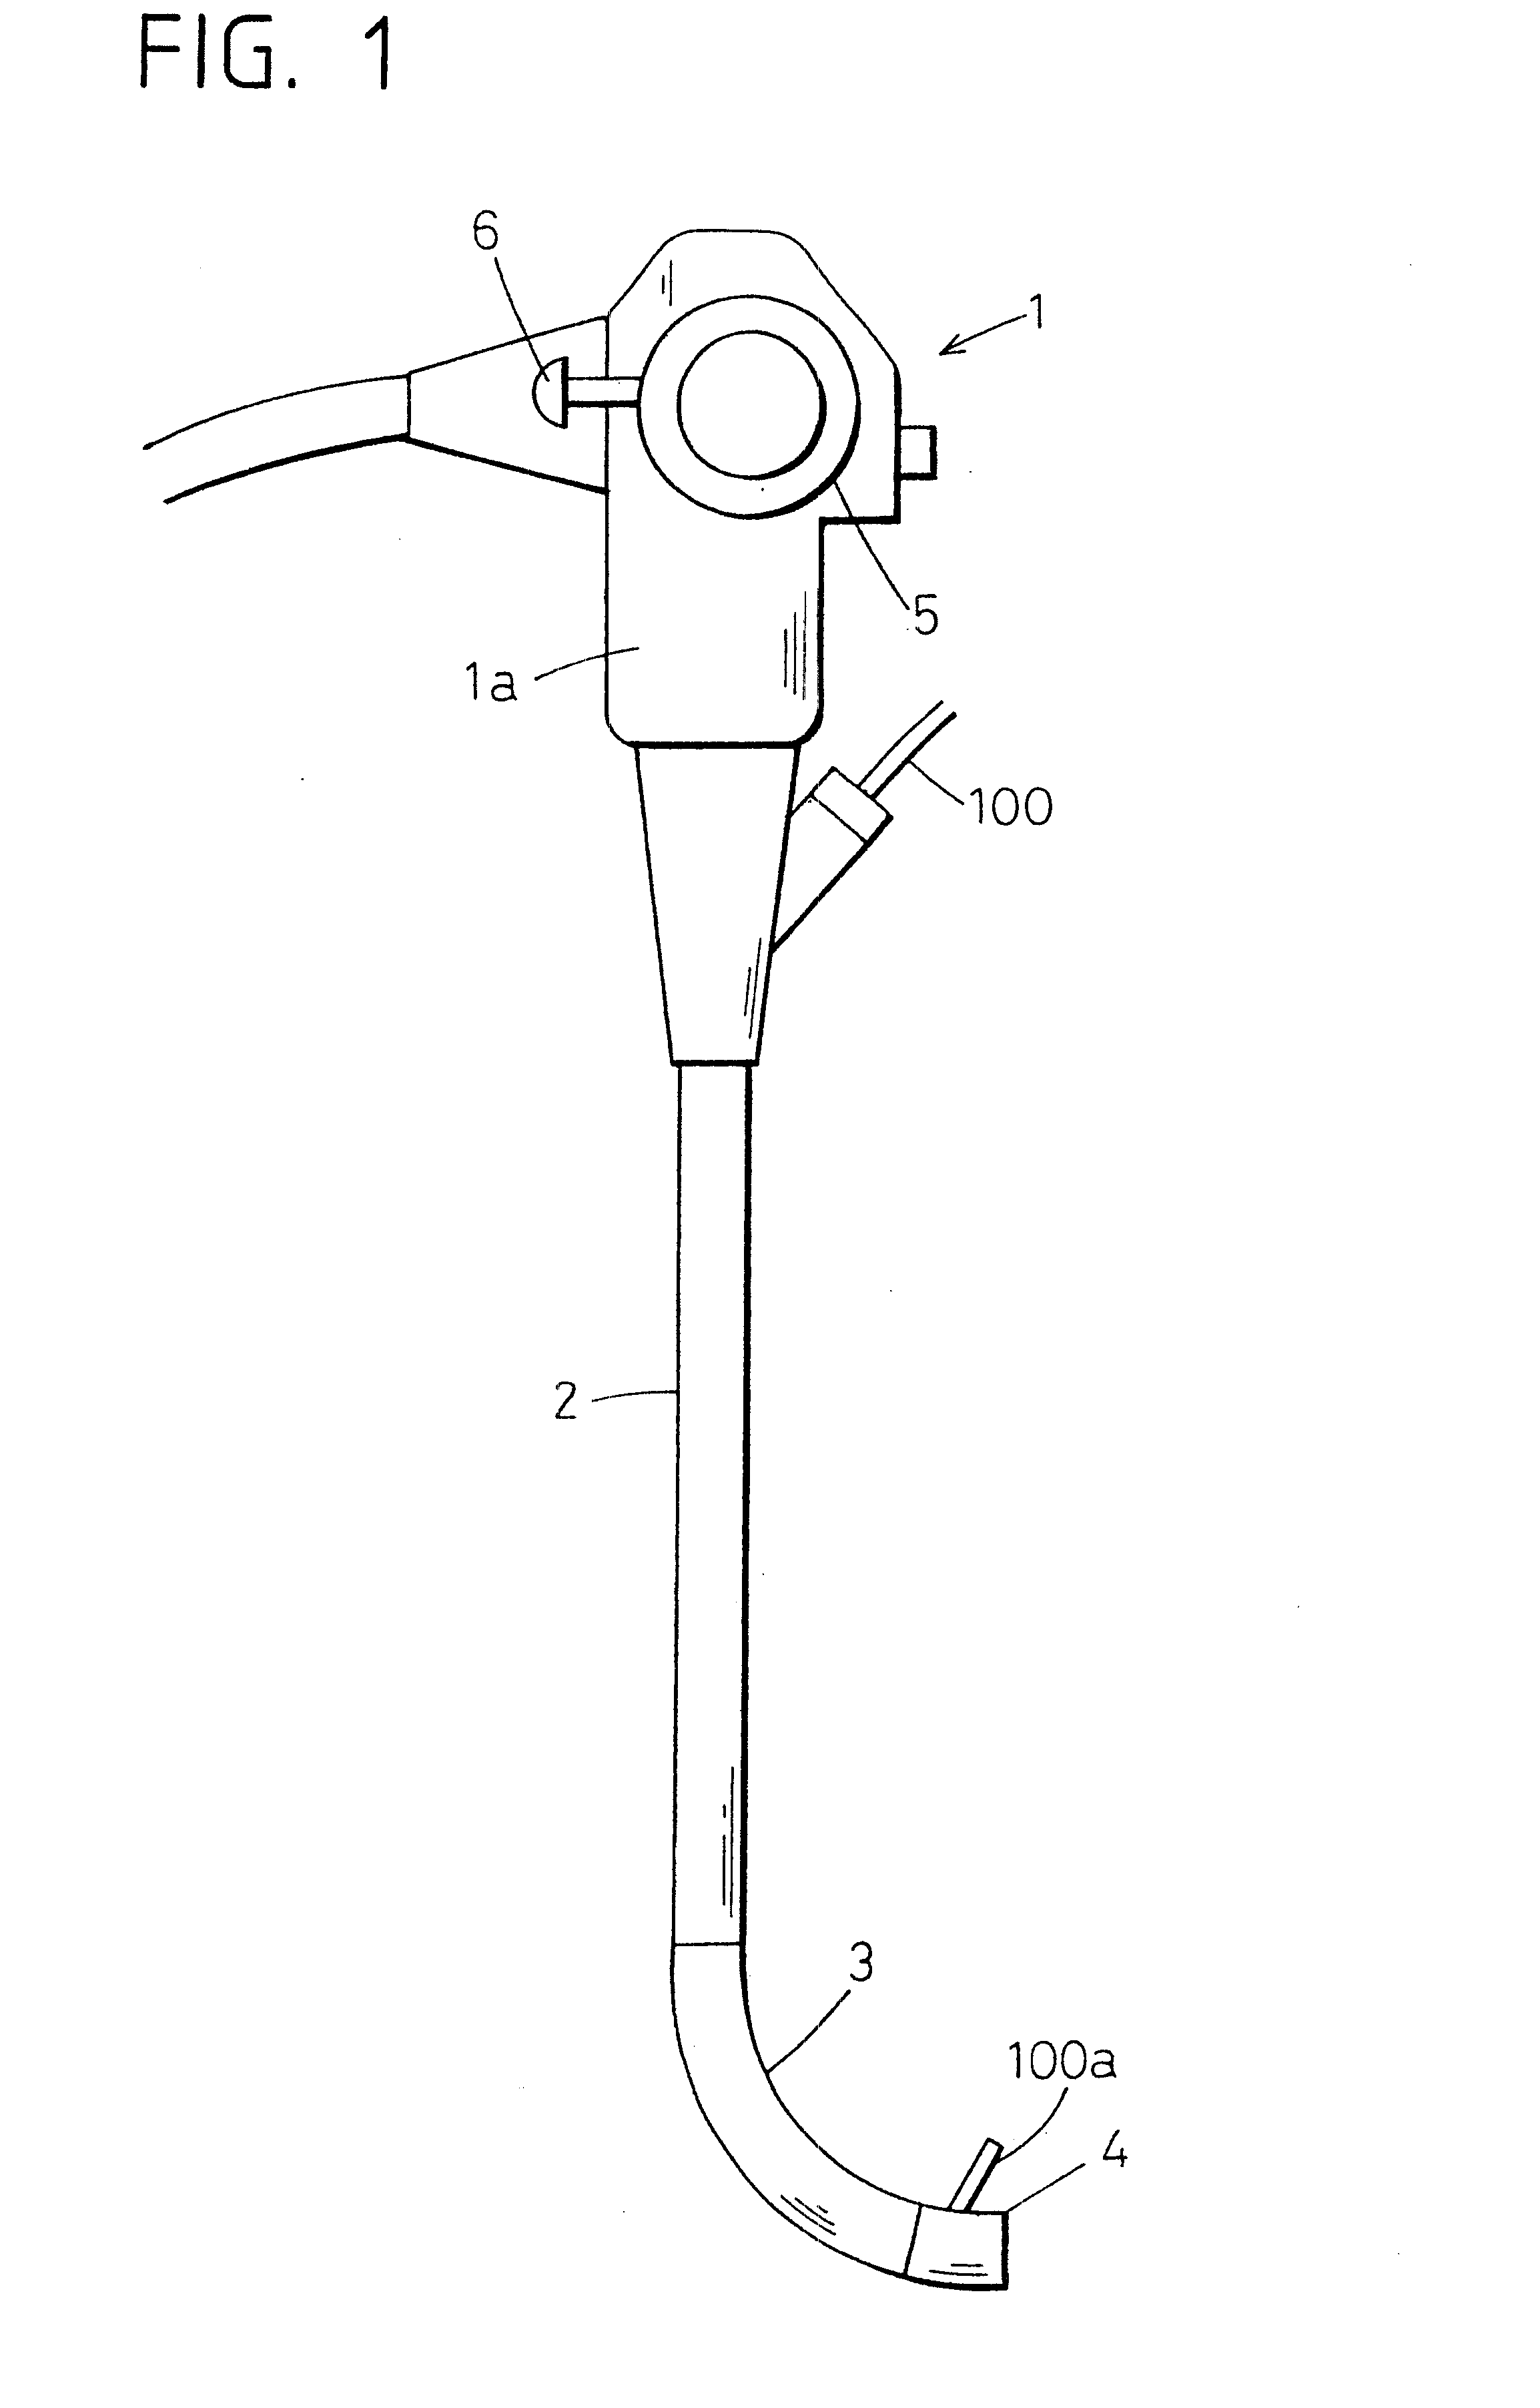 patent us6440062 - control wire driving mechanism for use in endoscope